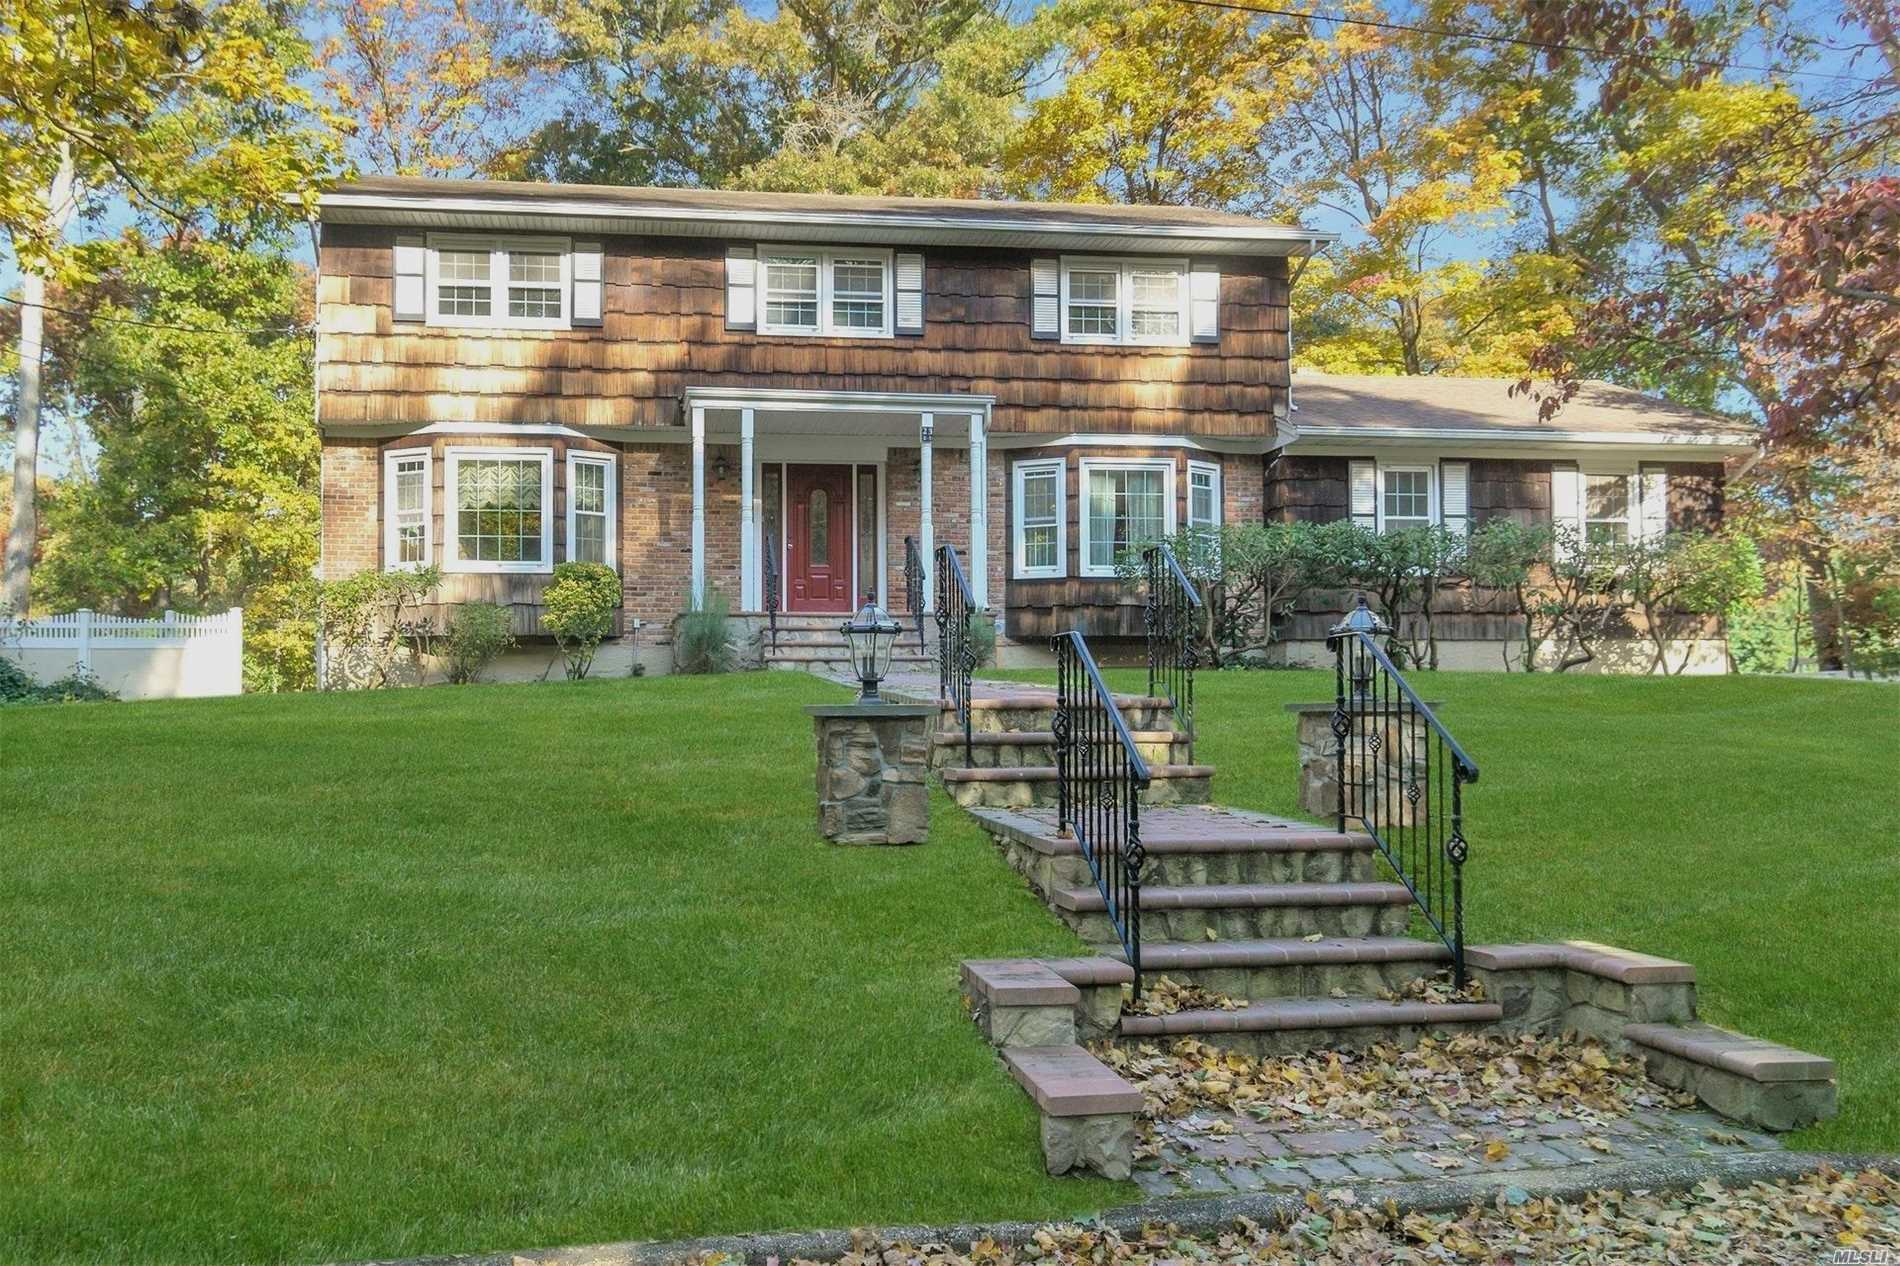 Photo of home for sale at 23 Cornwallis Rd, Setauket NY